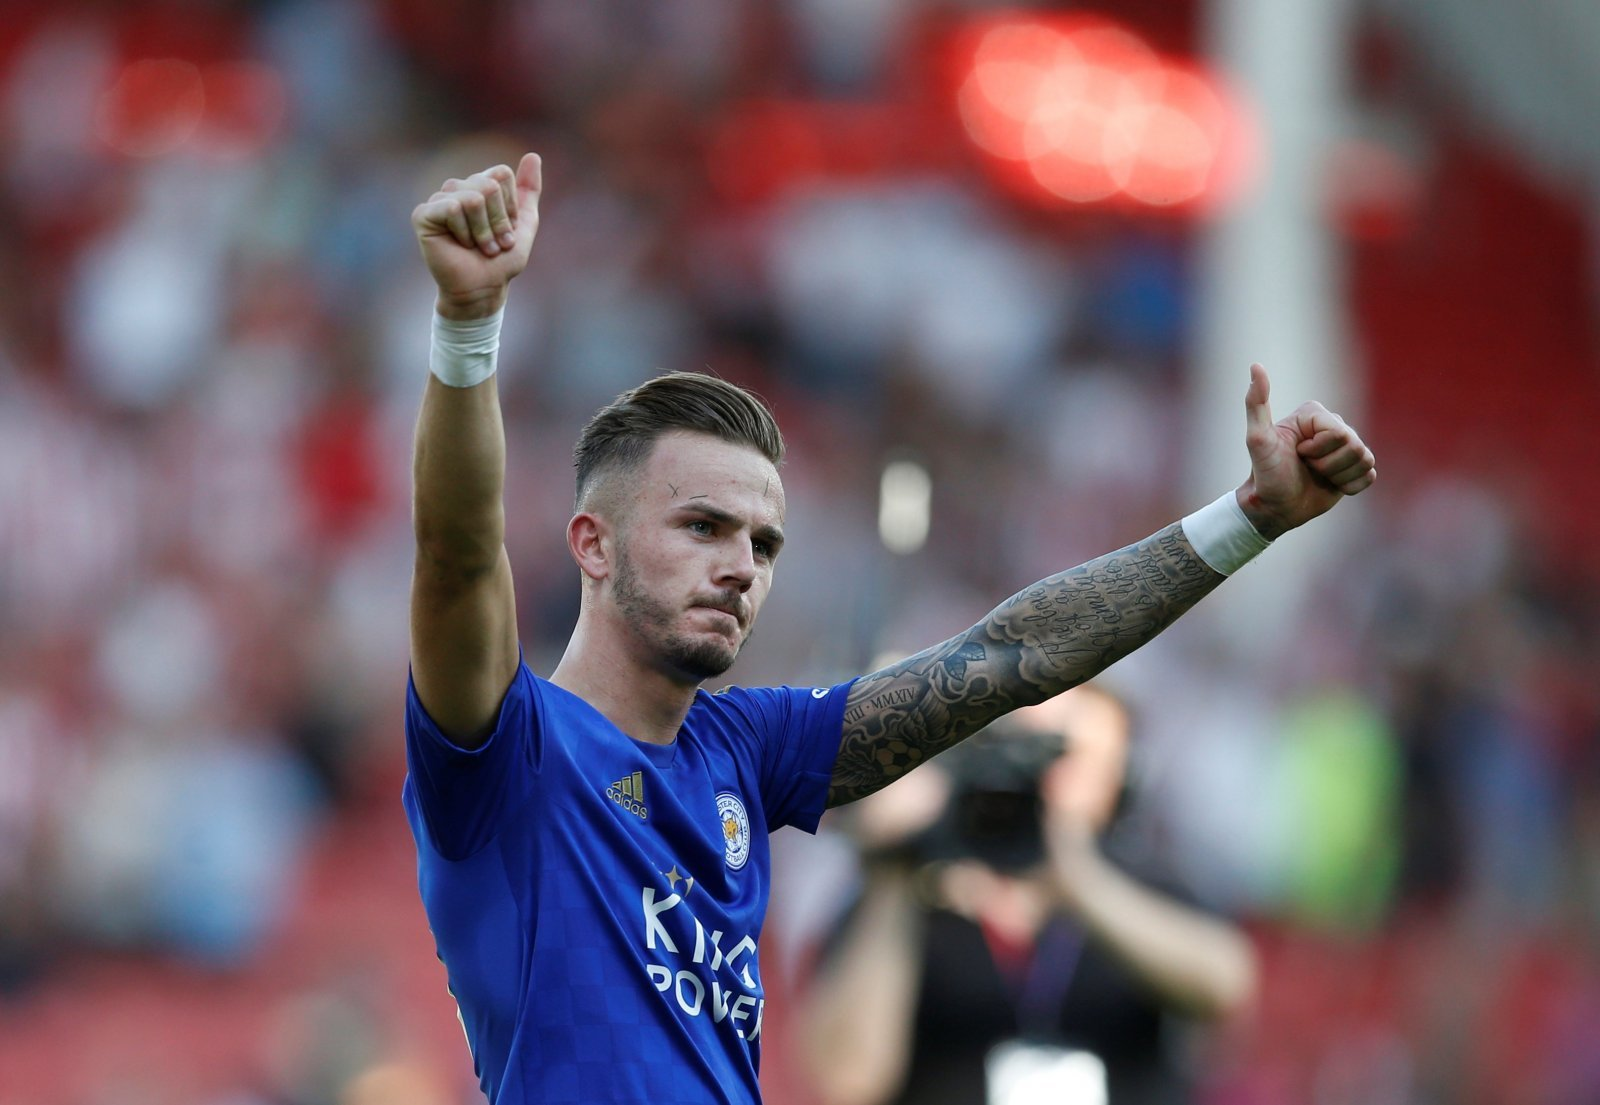 Leicester City: Fans react to rumours that James Maddison could join Manchester United in January